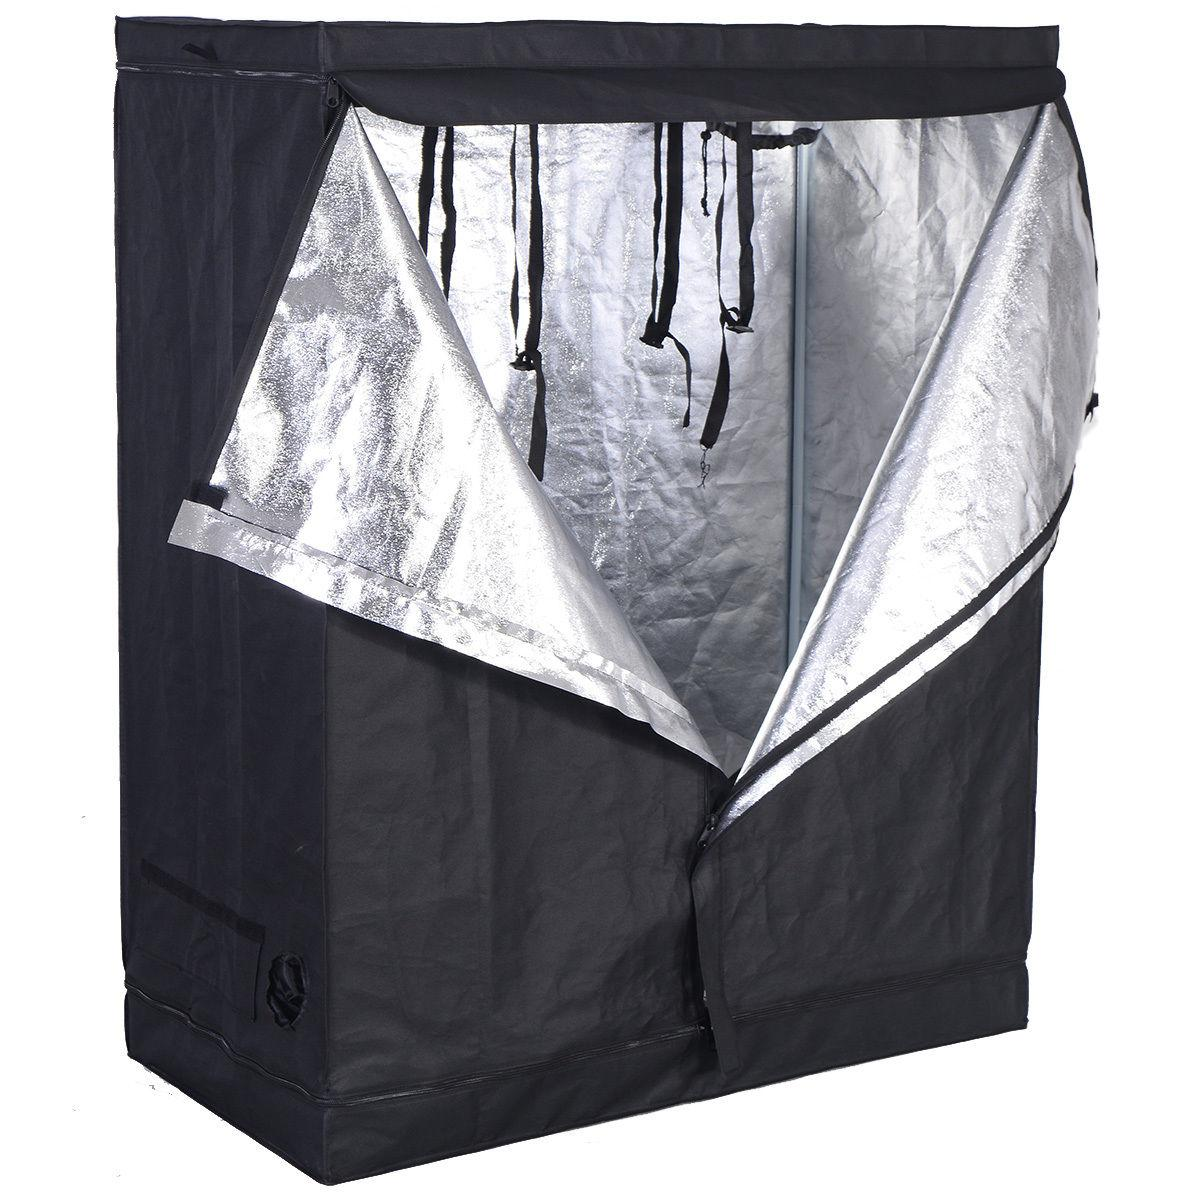 grow tent - 48 x x Inch Indoor Grow Tent Room Reflective Non Toxic Hut  sc 1 st  DHgate.com & Wholesale Grow Tent - Buy Cheap Grow Tent from Chinese Wholesalers ...